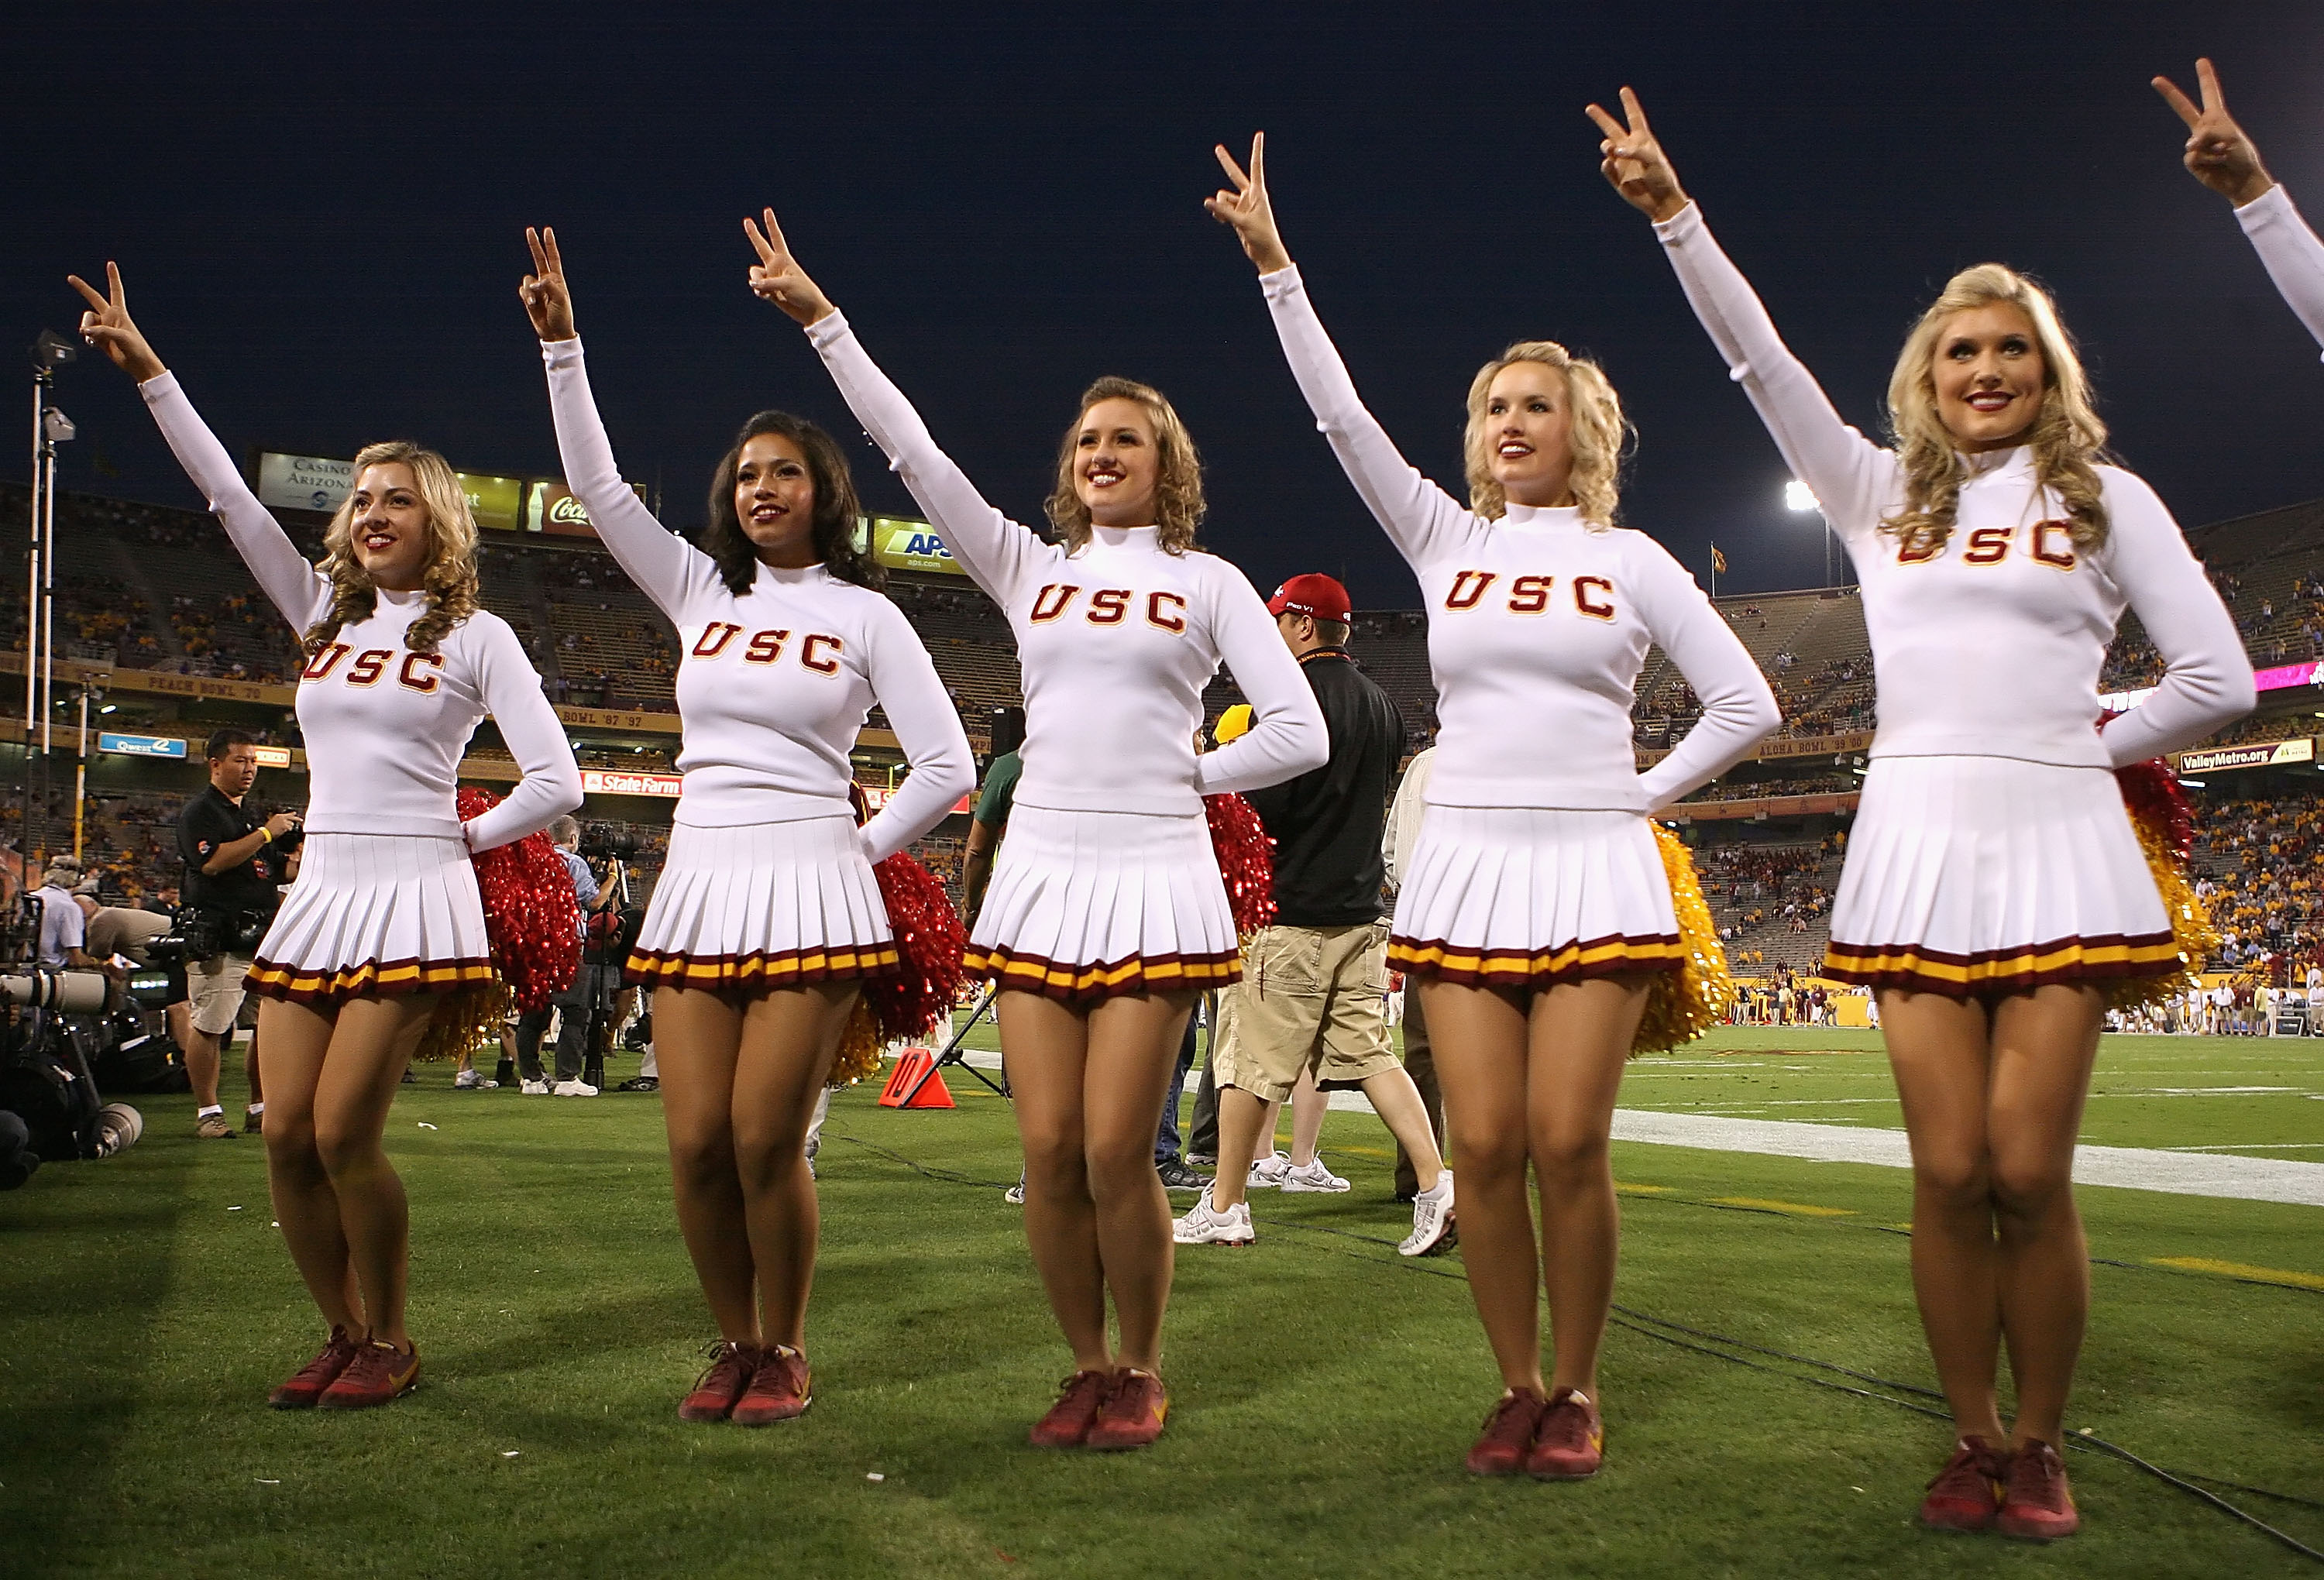 TEMPE, AZ - NOVEMBER 07:  The USC Trojans 'song girls' perform before the college football game against the Arizona State Sun Devils at Sun Devil Stadium on November 7, 2009 in Tempe, Arizona. The Trojans defeated the Devils 14-9.  (Photo by Christian Pet